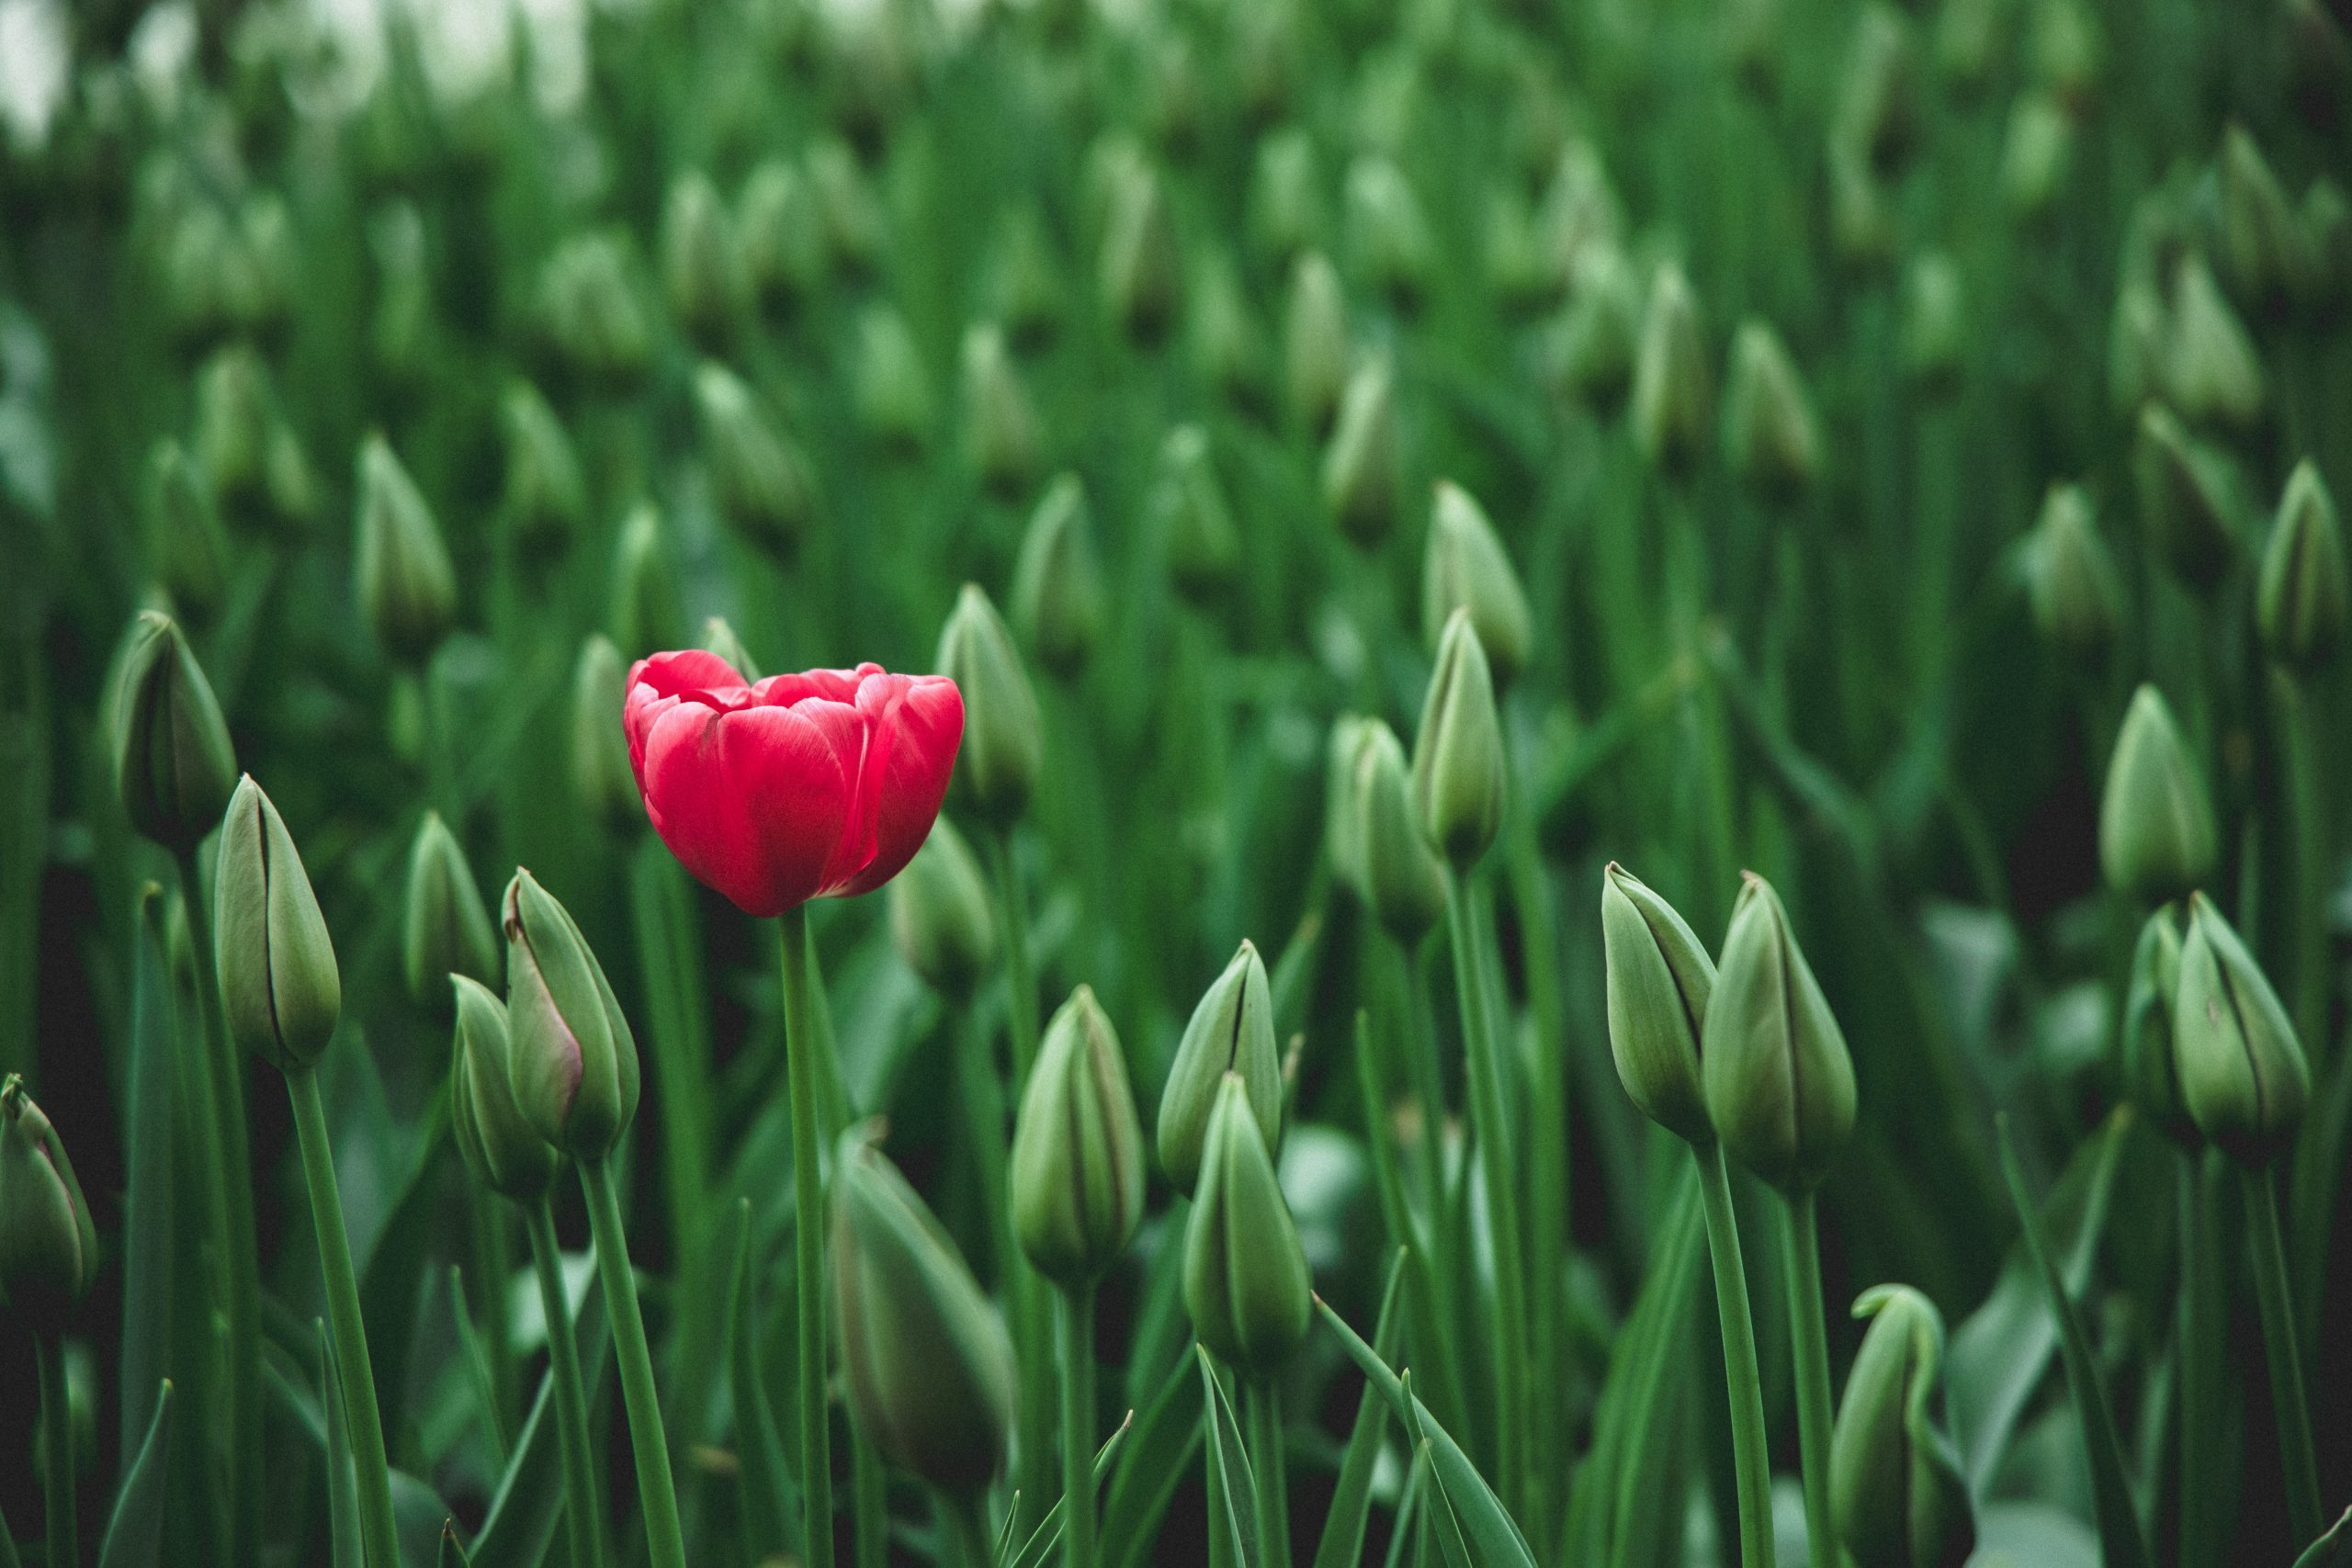 https://www.pexels.com/photo/selective-focus-photo-of-a-red-tulip-flower-2480072/